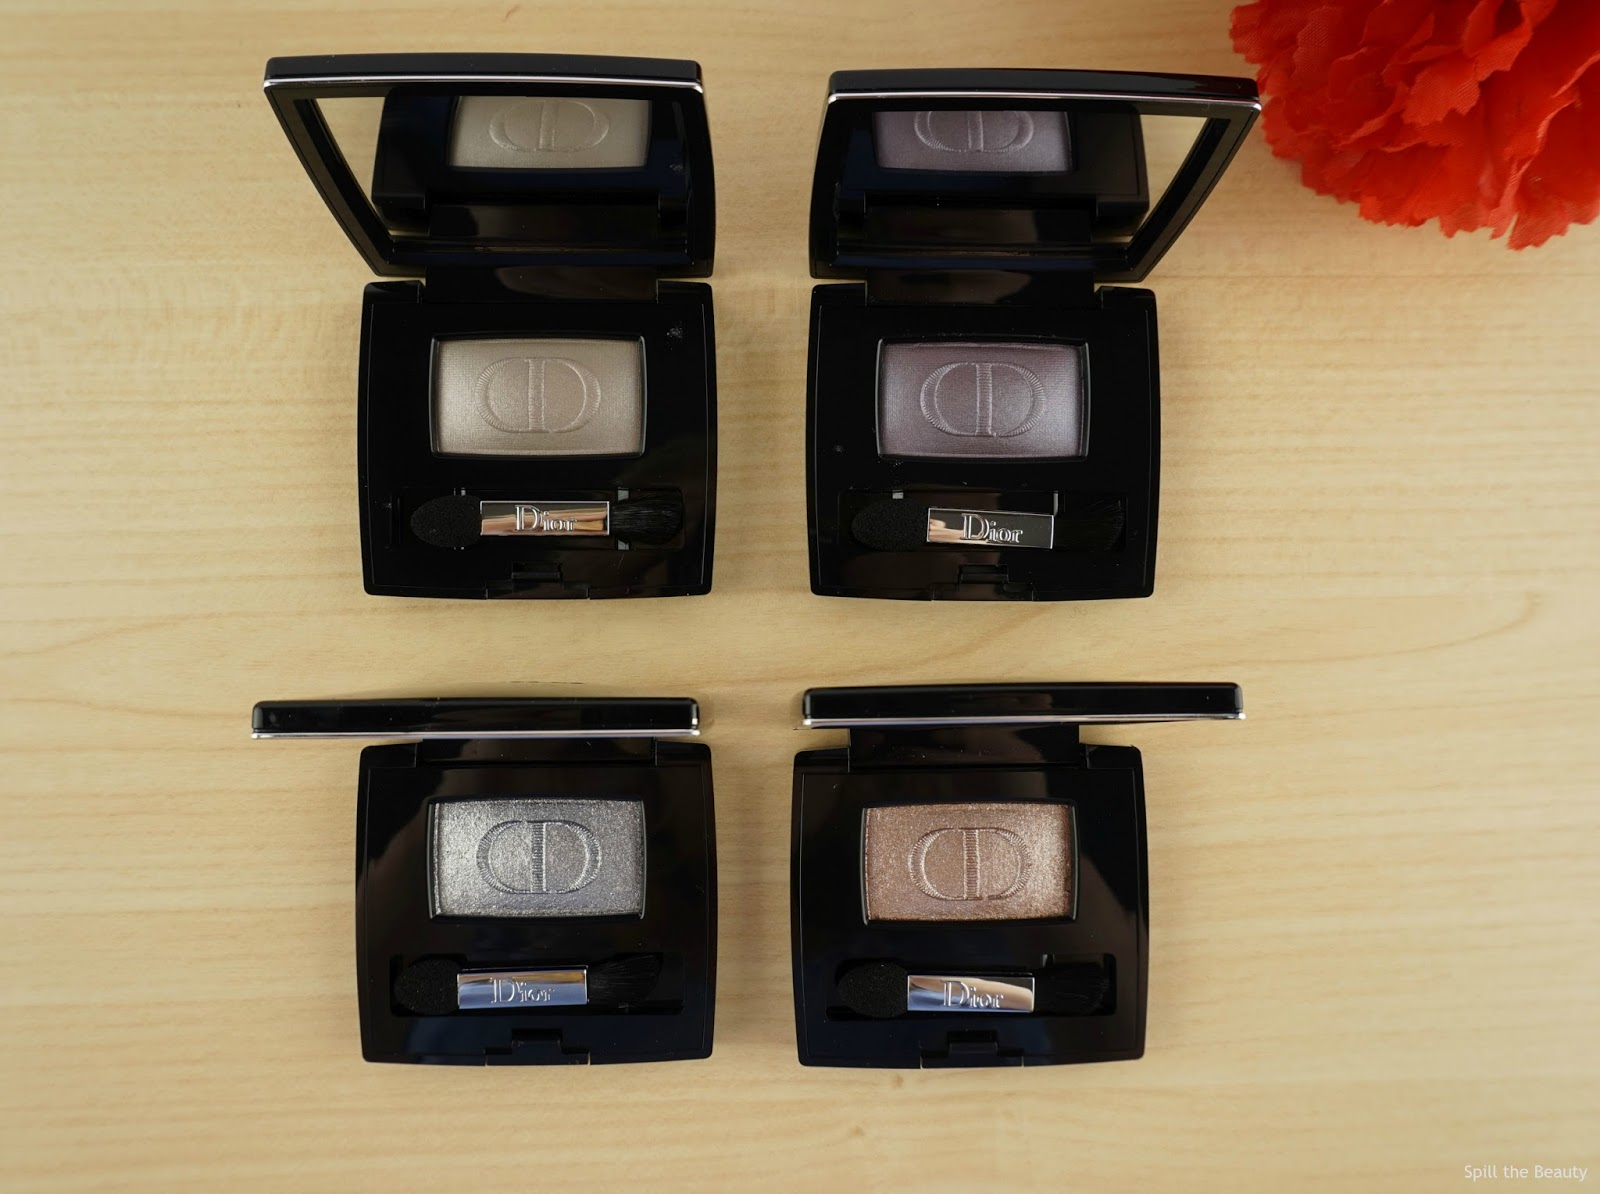 Diorshow Mono Eyeshadow 'Minimalism', 'Atmosphere', 'Techno', 'Cosmopolite' – Review and Swatches